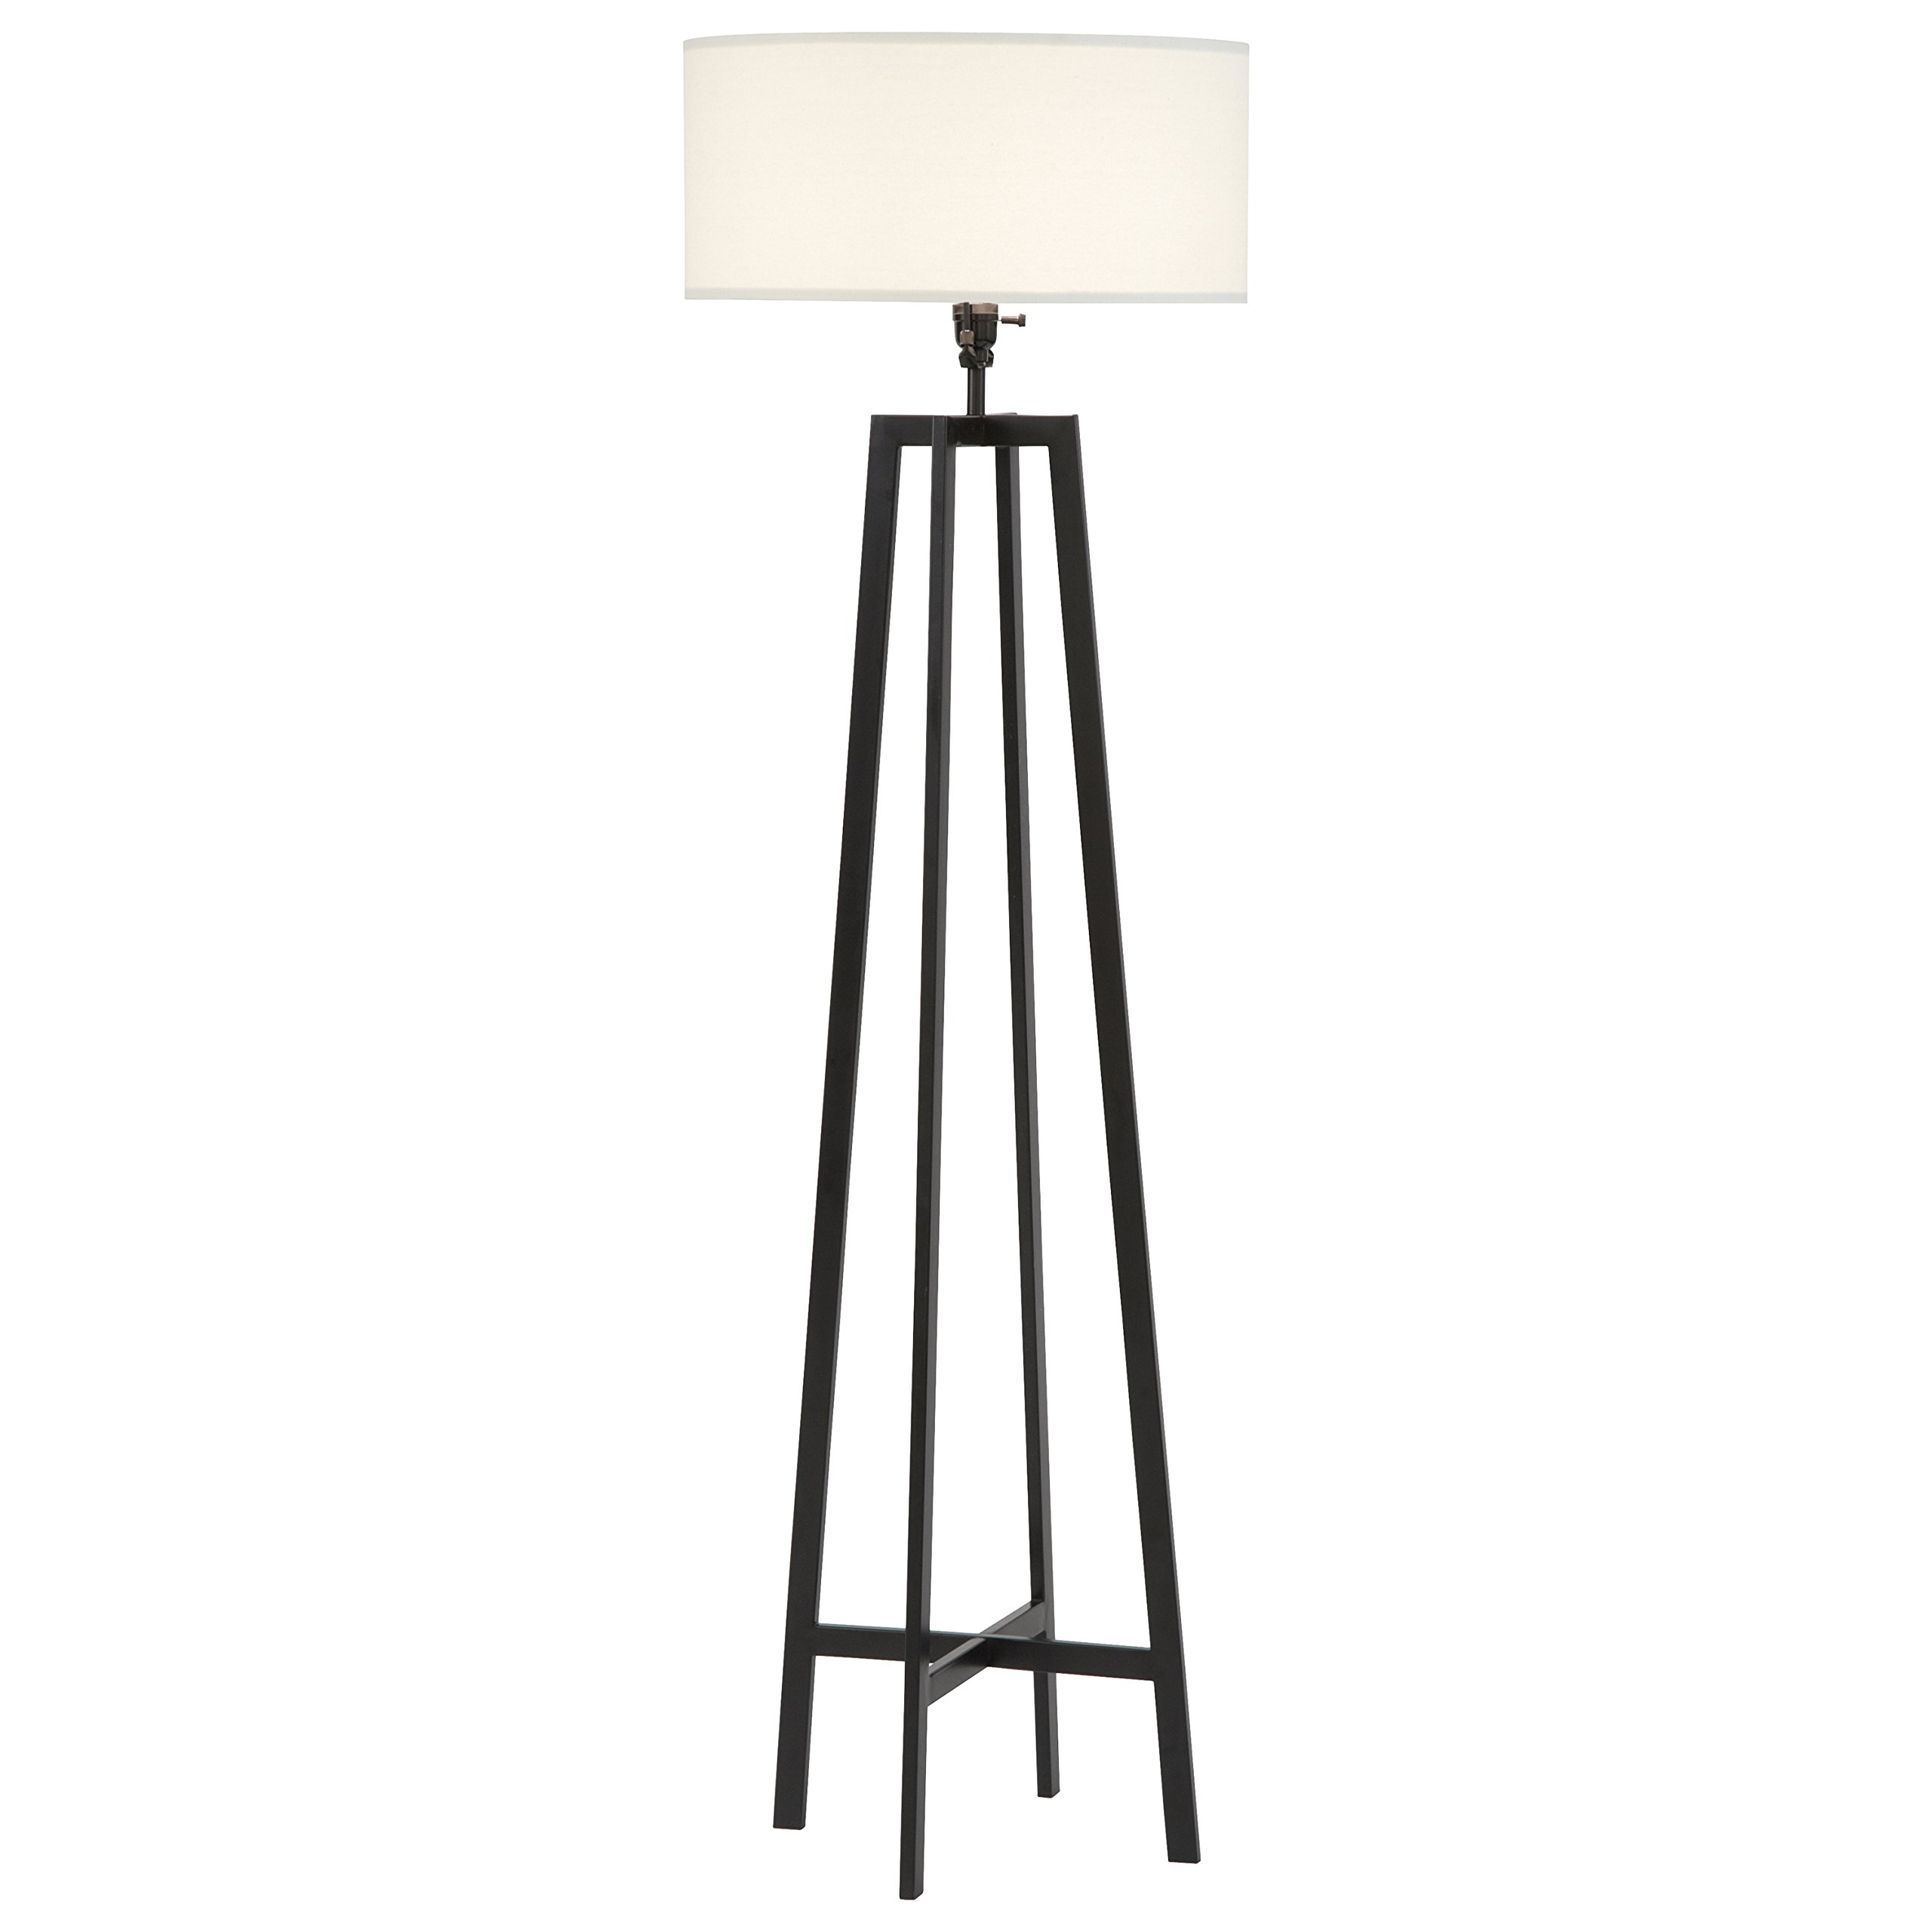 Stone & Beam Deco Black Metal Floor Lamp, 59.5''H, With Bulb, White Shade by Stone & Beam